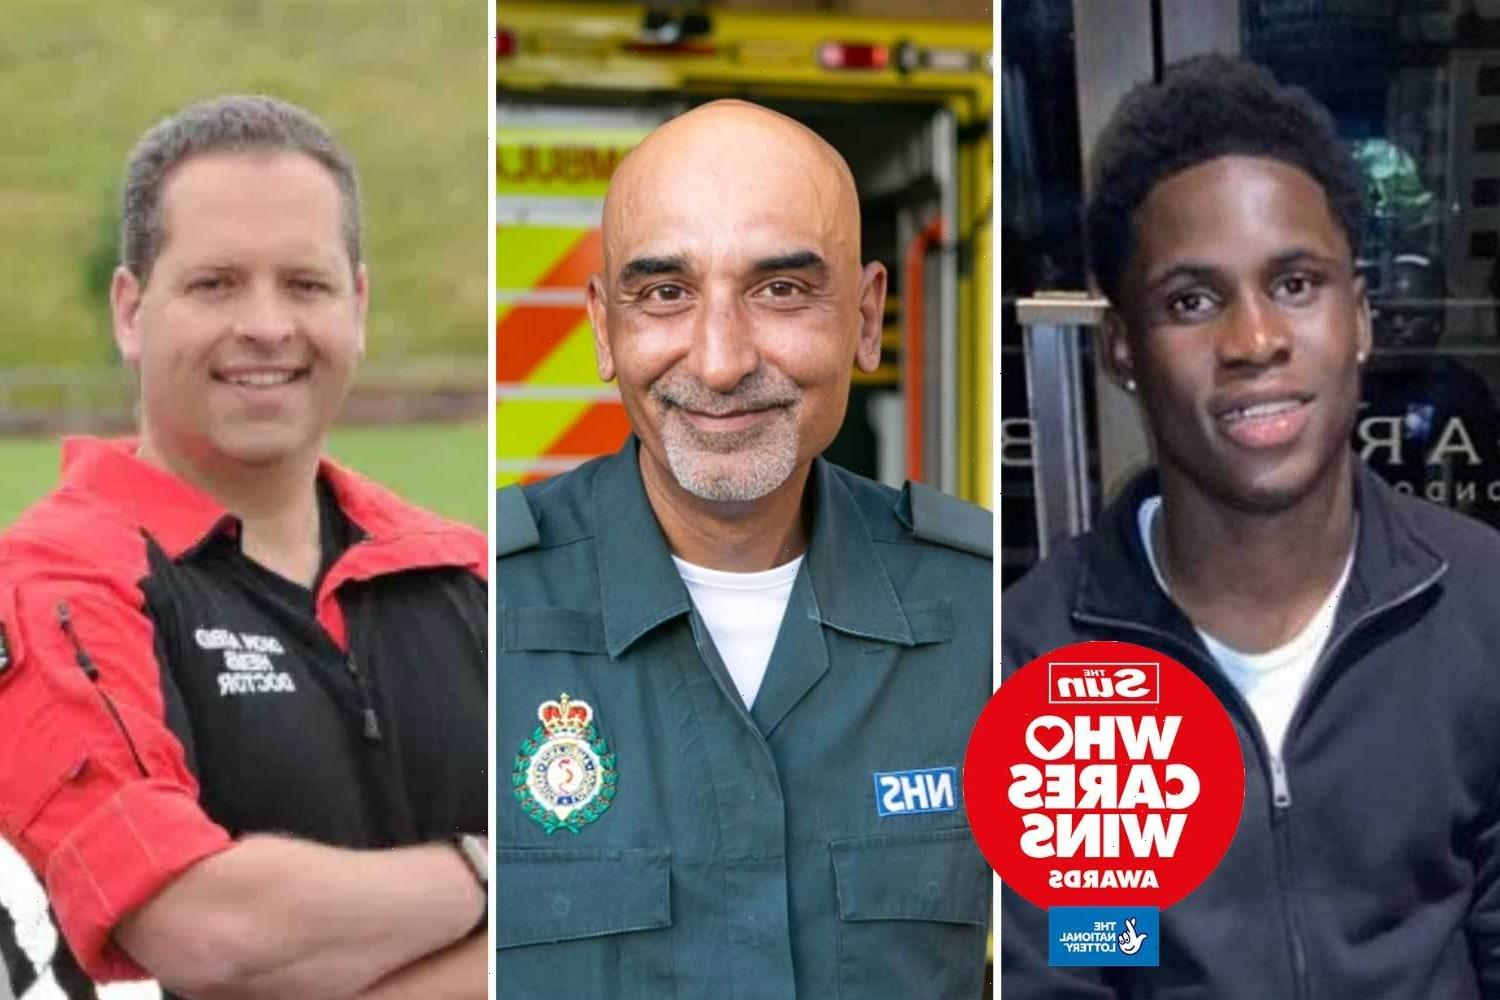 The heroes who ran towards danger to save the lives of strangers up for Who Cares Wins award